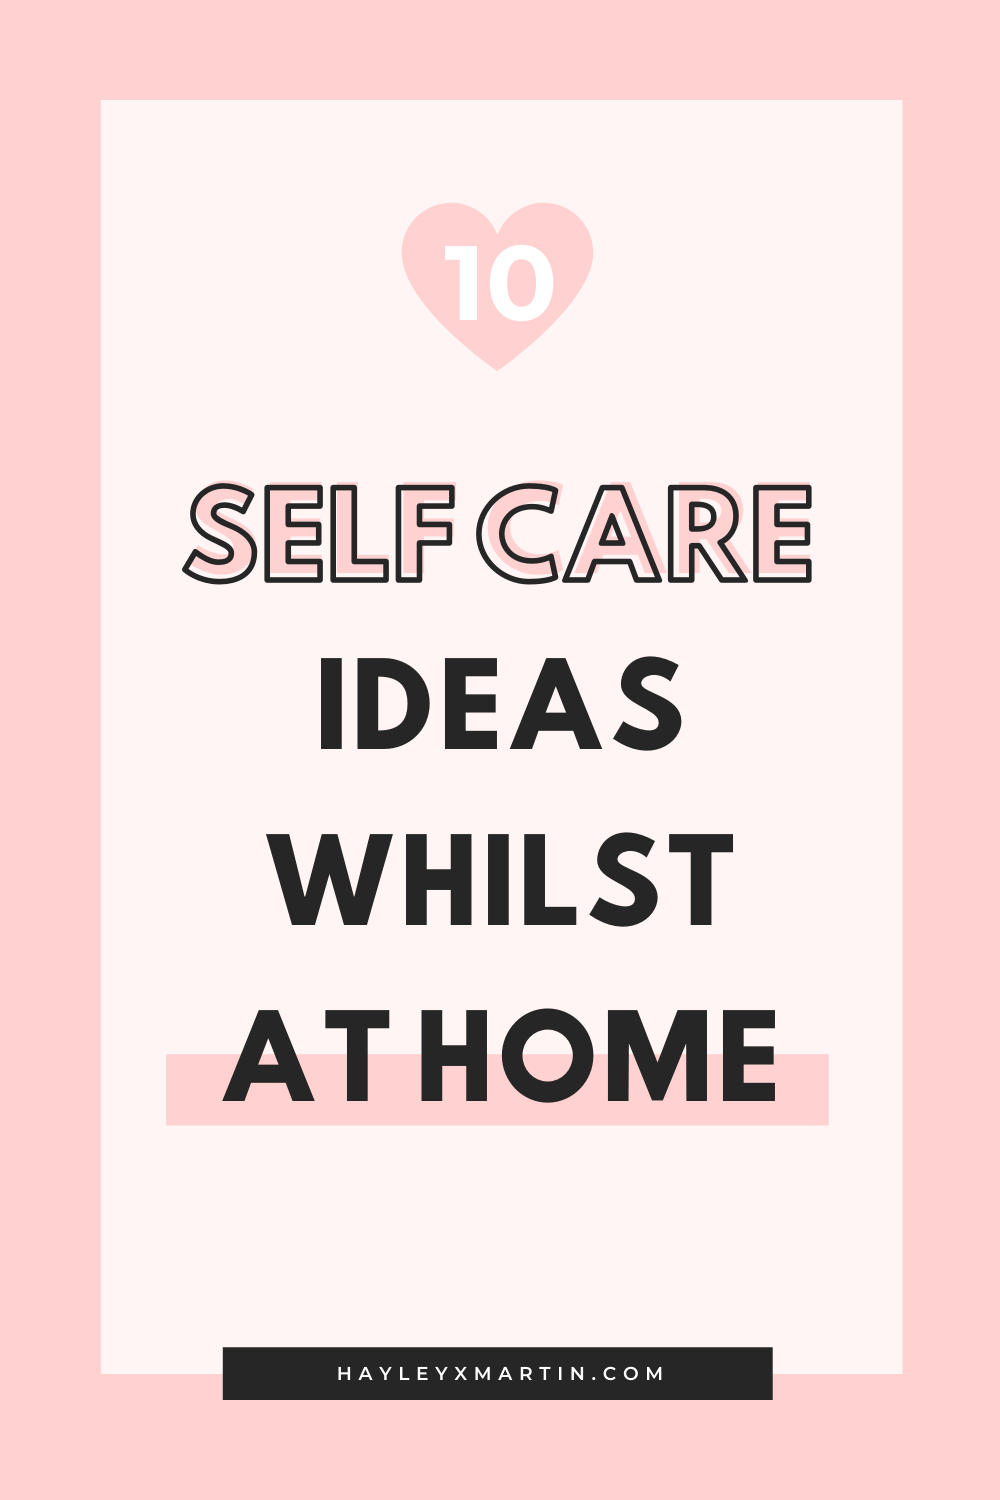 10 self care ideas whilst stuck at home | hayleyxmartin